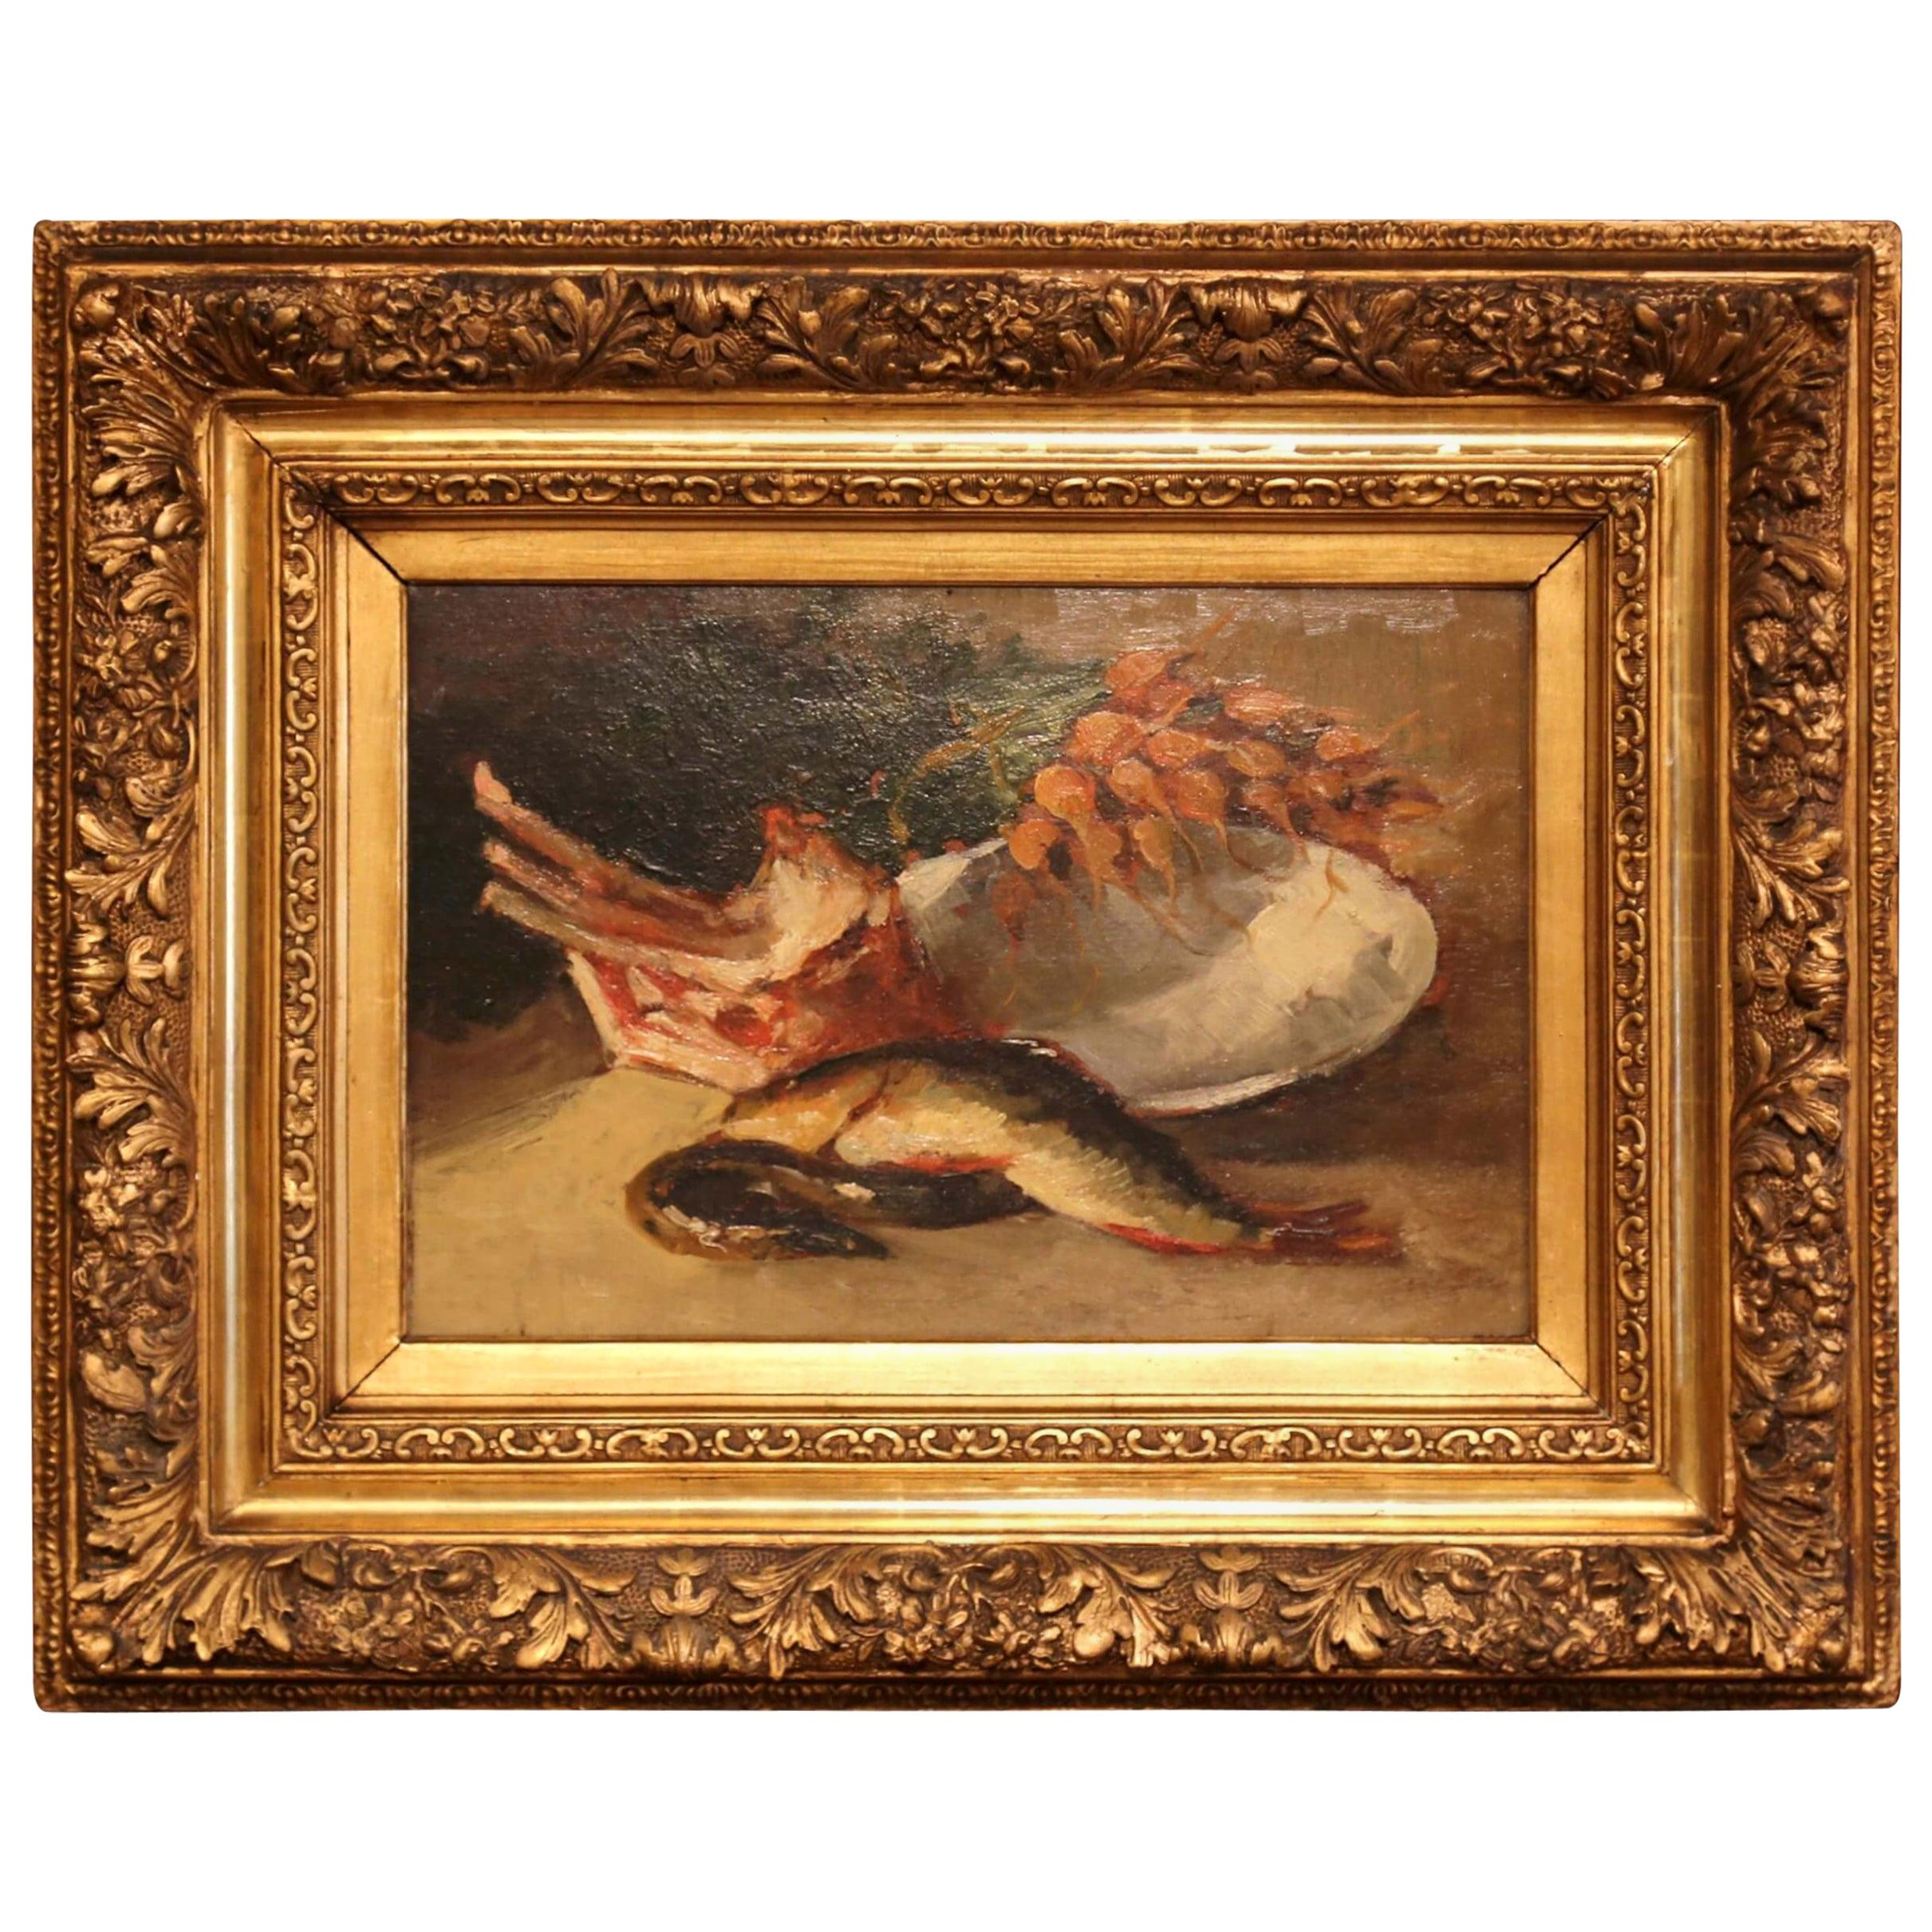 19th Century French Still life Oil Painting on Board in Carved Gilt Frame